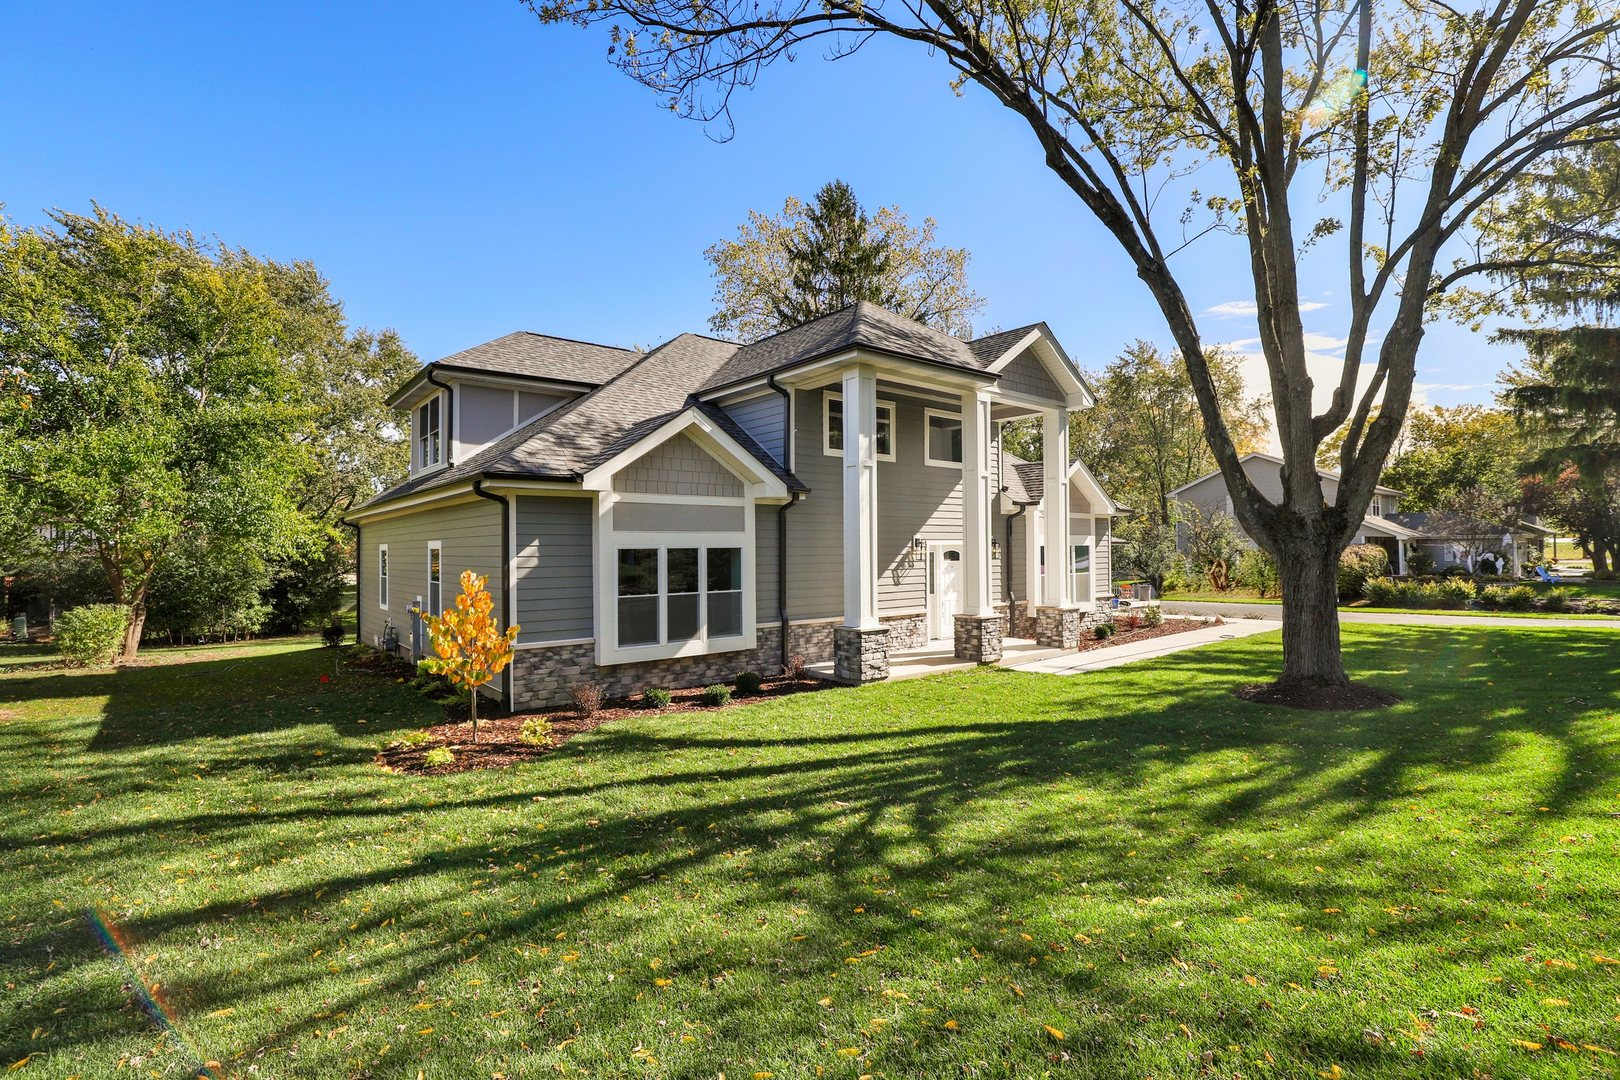 Photo for 5705 Fairview Avenue, Downers Grove, IL 60516 (MLS # 10884194)